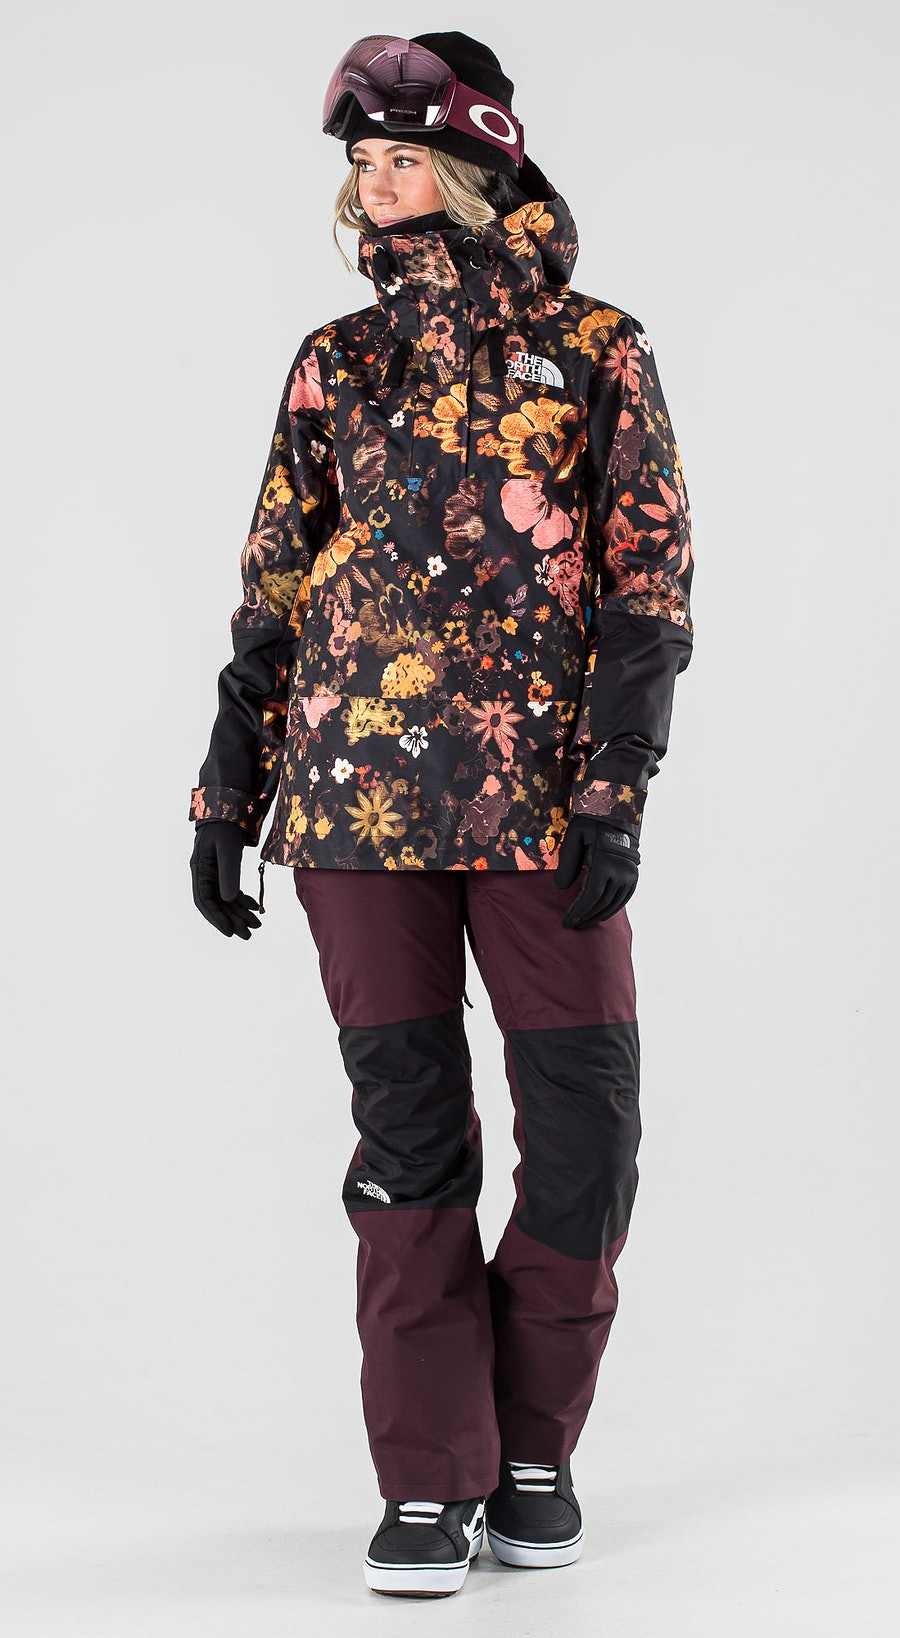 The North Face Tanager Tnf Black/Tnf Black Flowerchld Multiprint Snowboardkläder Multi